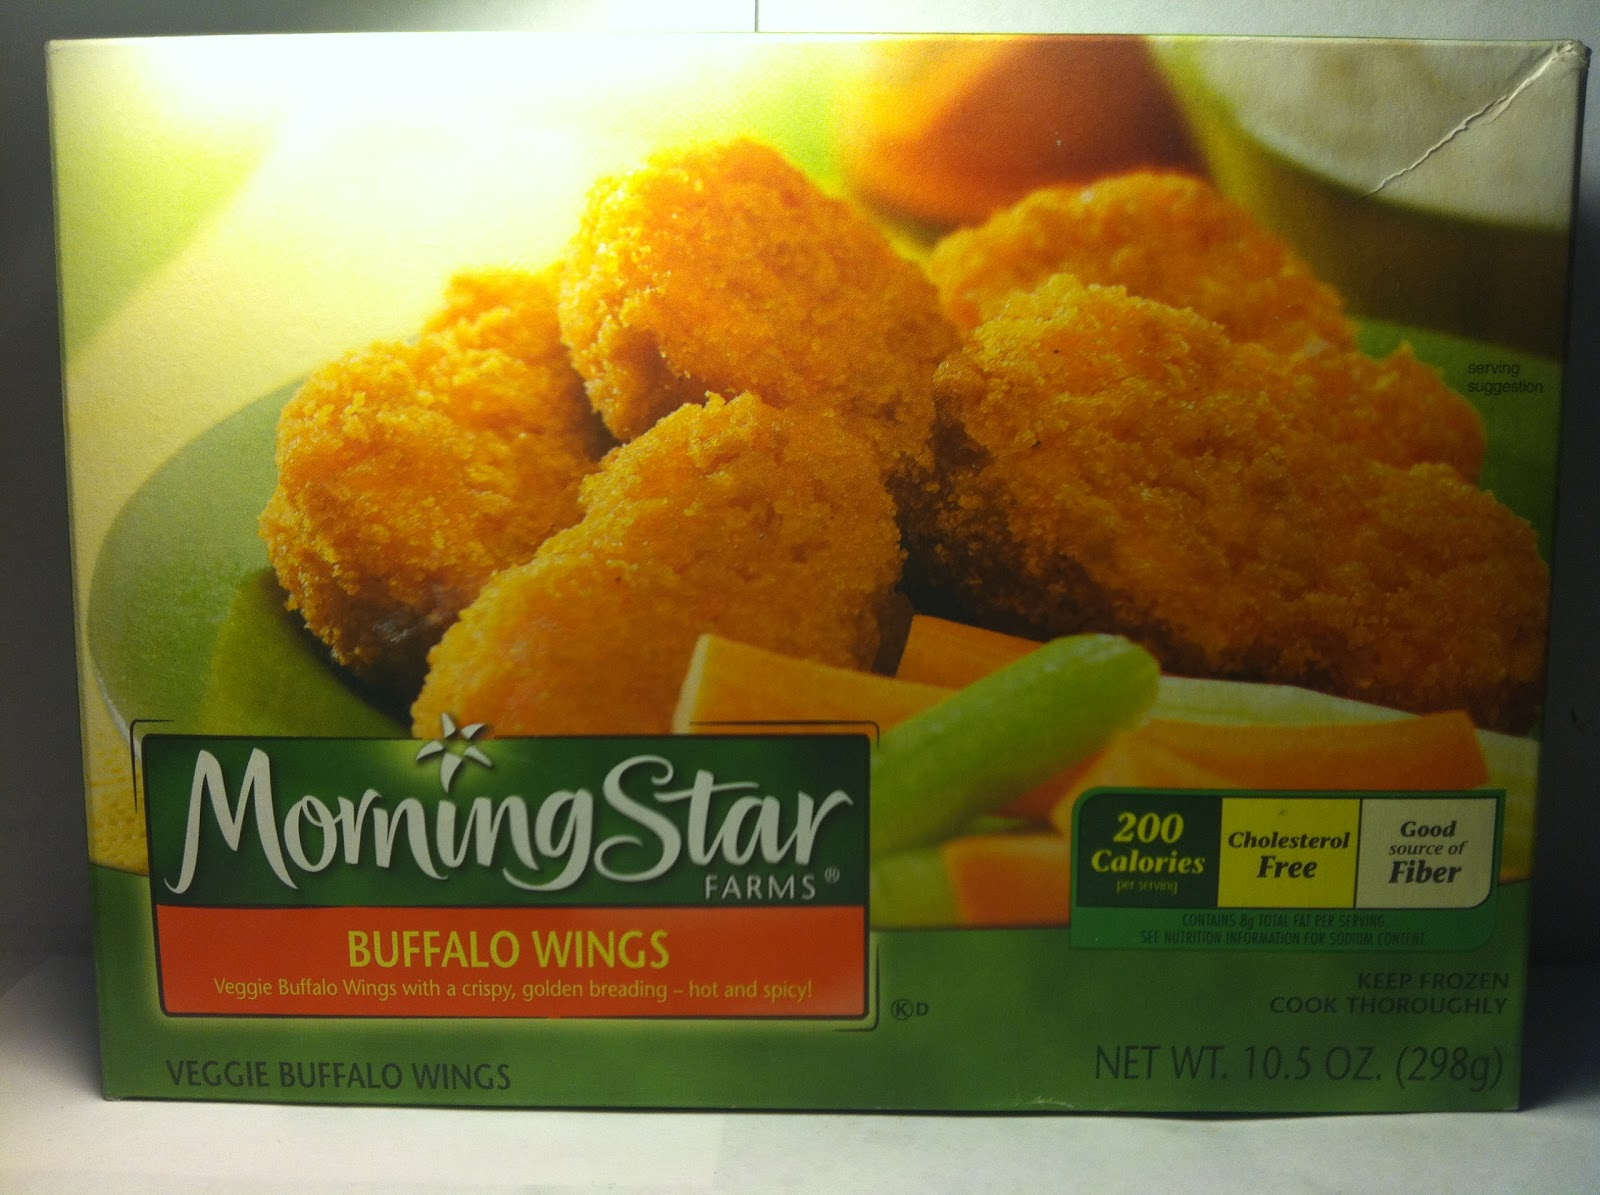 star foods Just what the world ordered discover tasty, wholesome veggie meals and meatless foods from morningstar farms find links to recipes, coupons, and more.